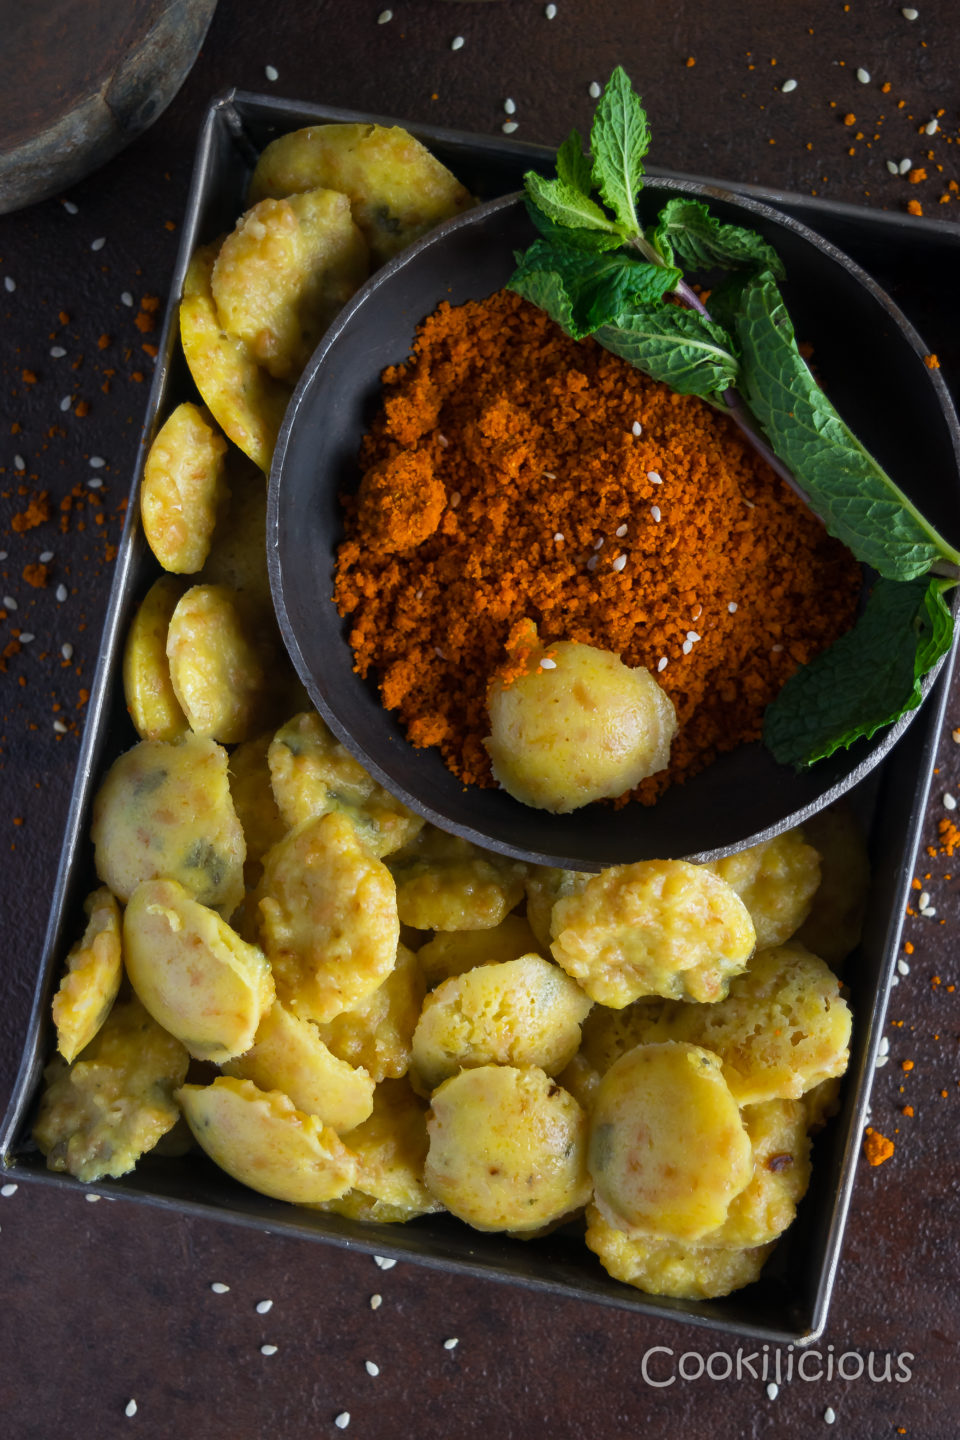 A square tin filled with mini idli made of bulgur wheat & sweet corn, served with red peanut chutney and garnished with mint leaves